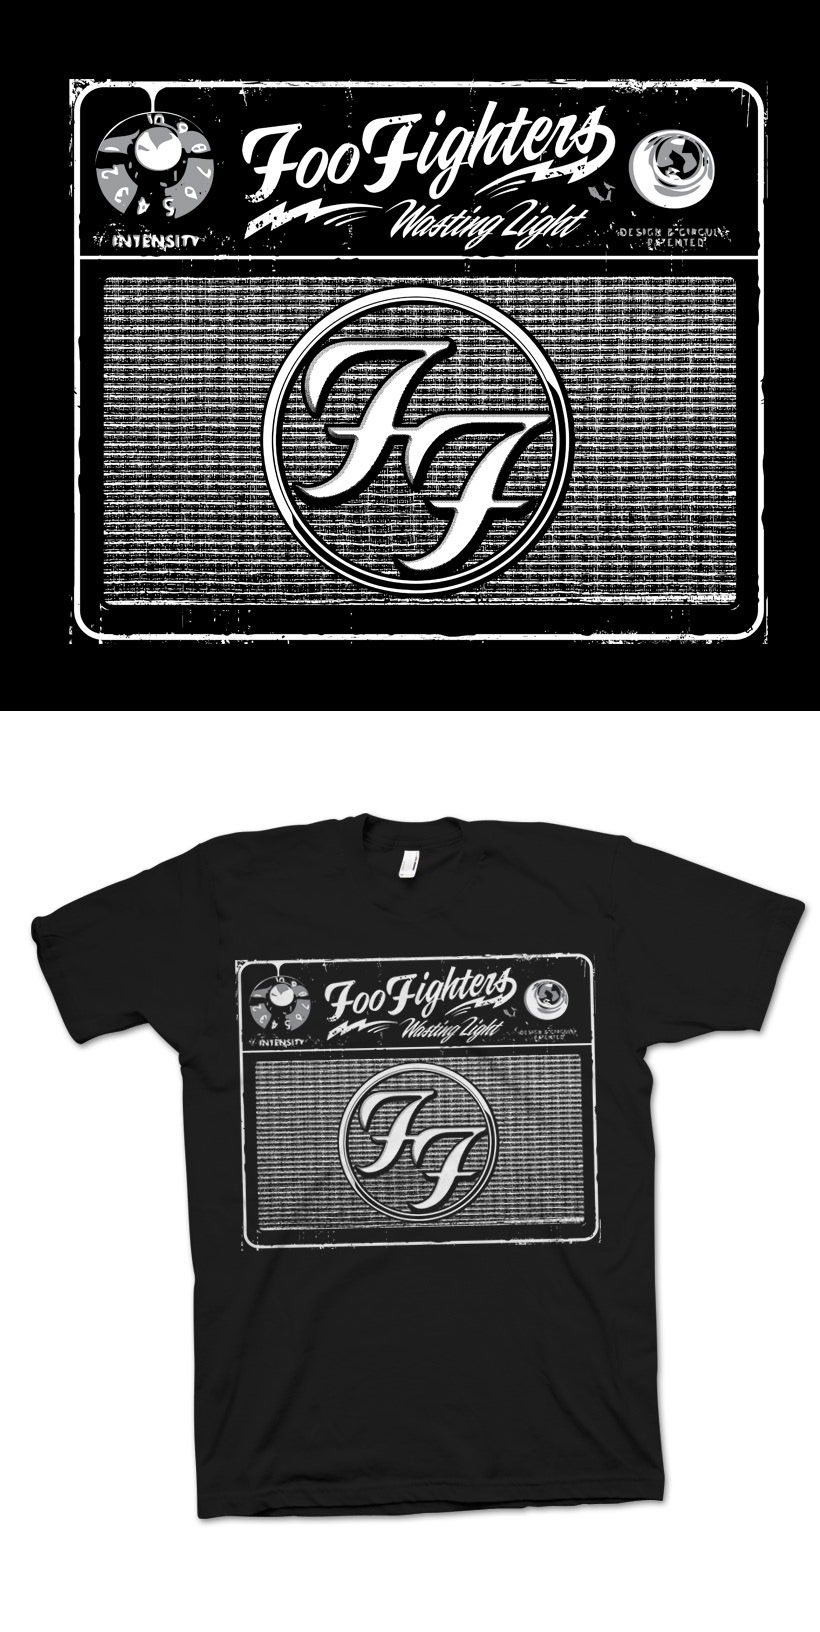 new product 55efa a2b27 jeremy packer - Foo Fighters Merch Design